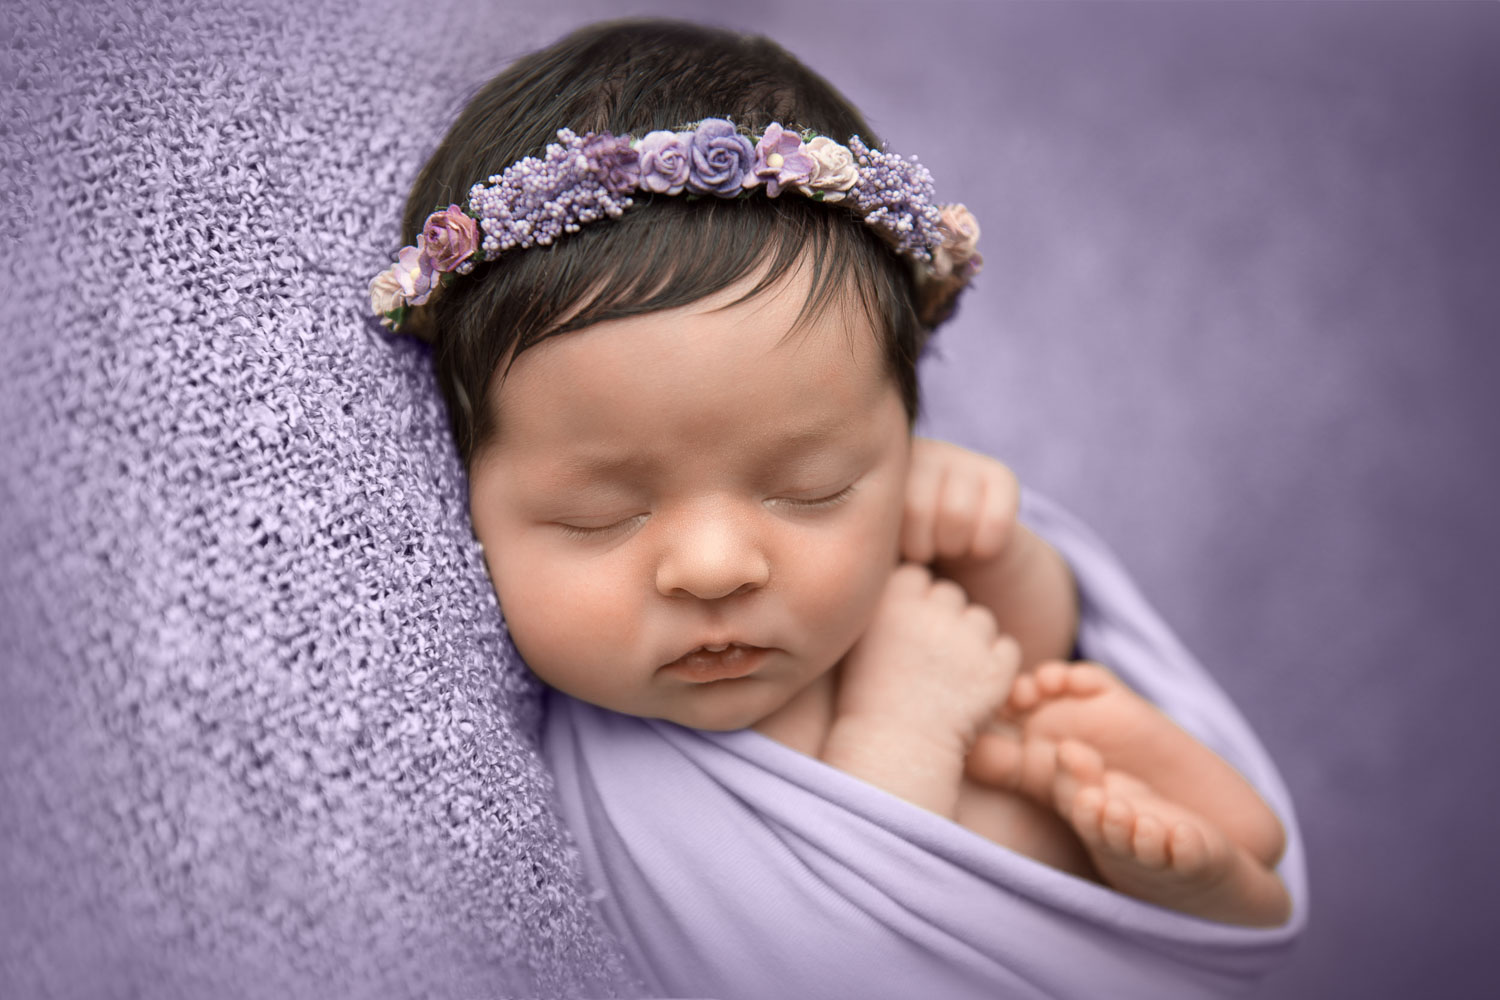 newborn photography baby sleeping by siobhan kelly photography